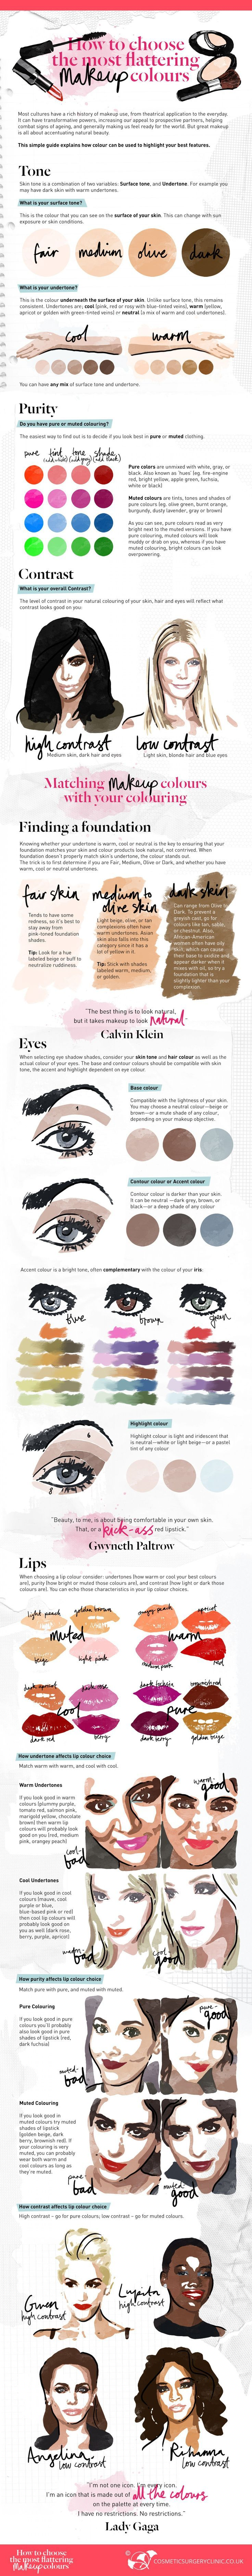 How to Choose the Most Flattering Makeup Colors for Your Skin Tone makeuptutoria...